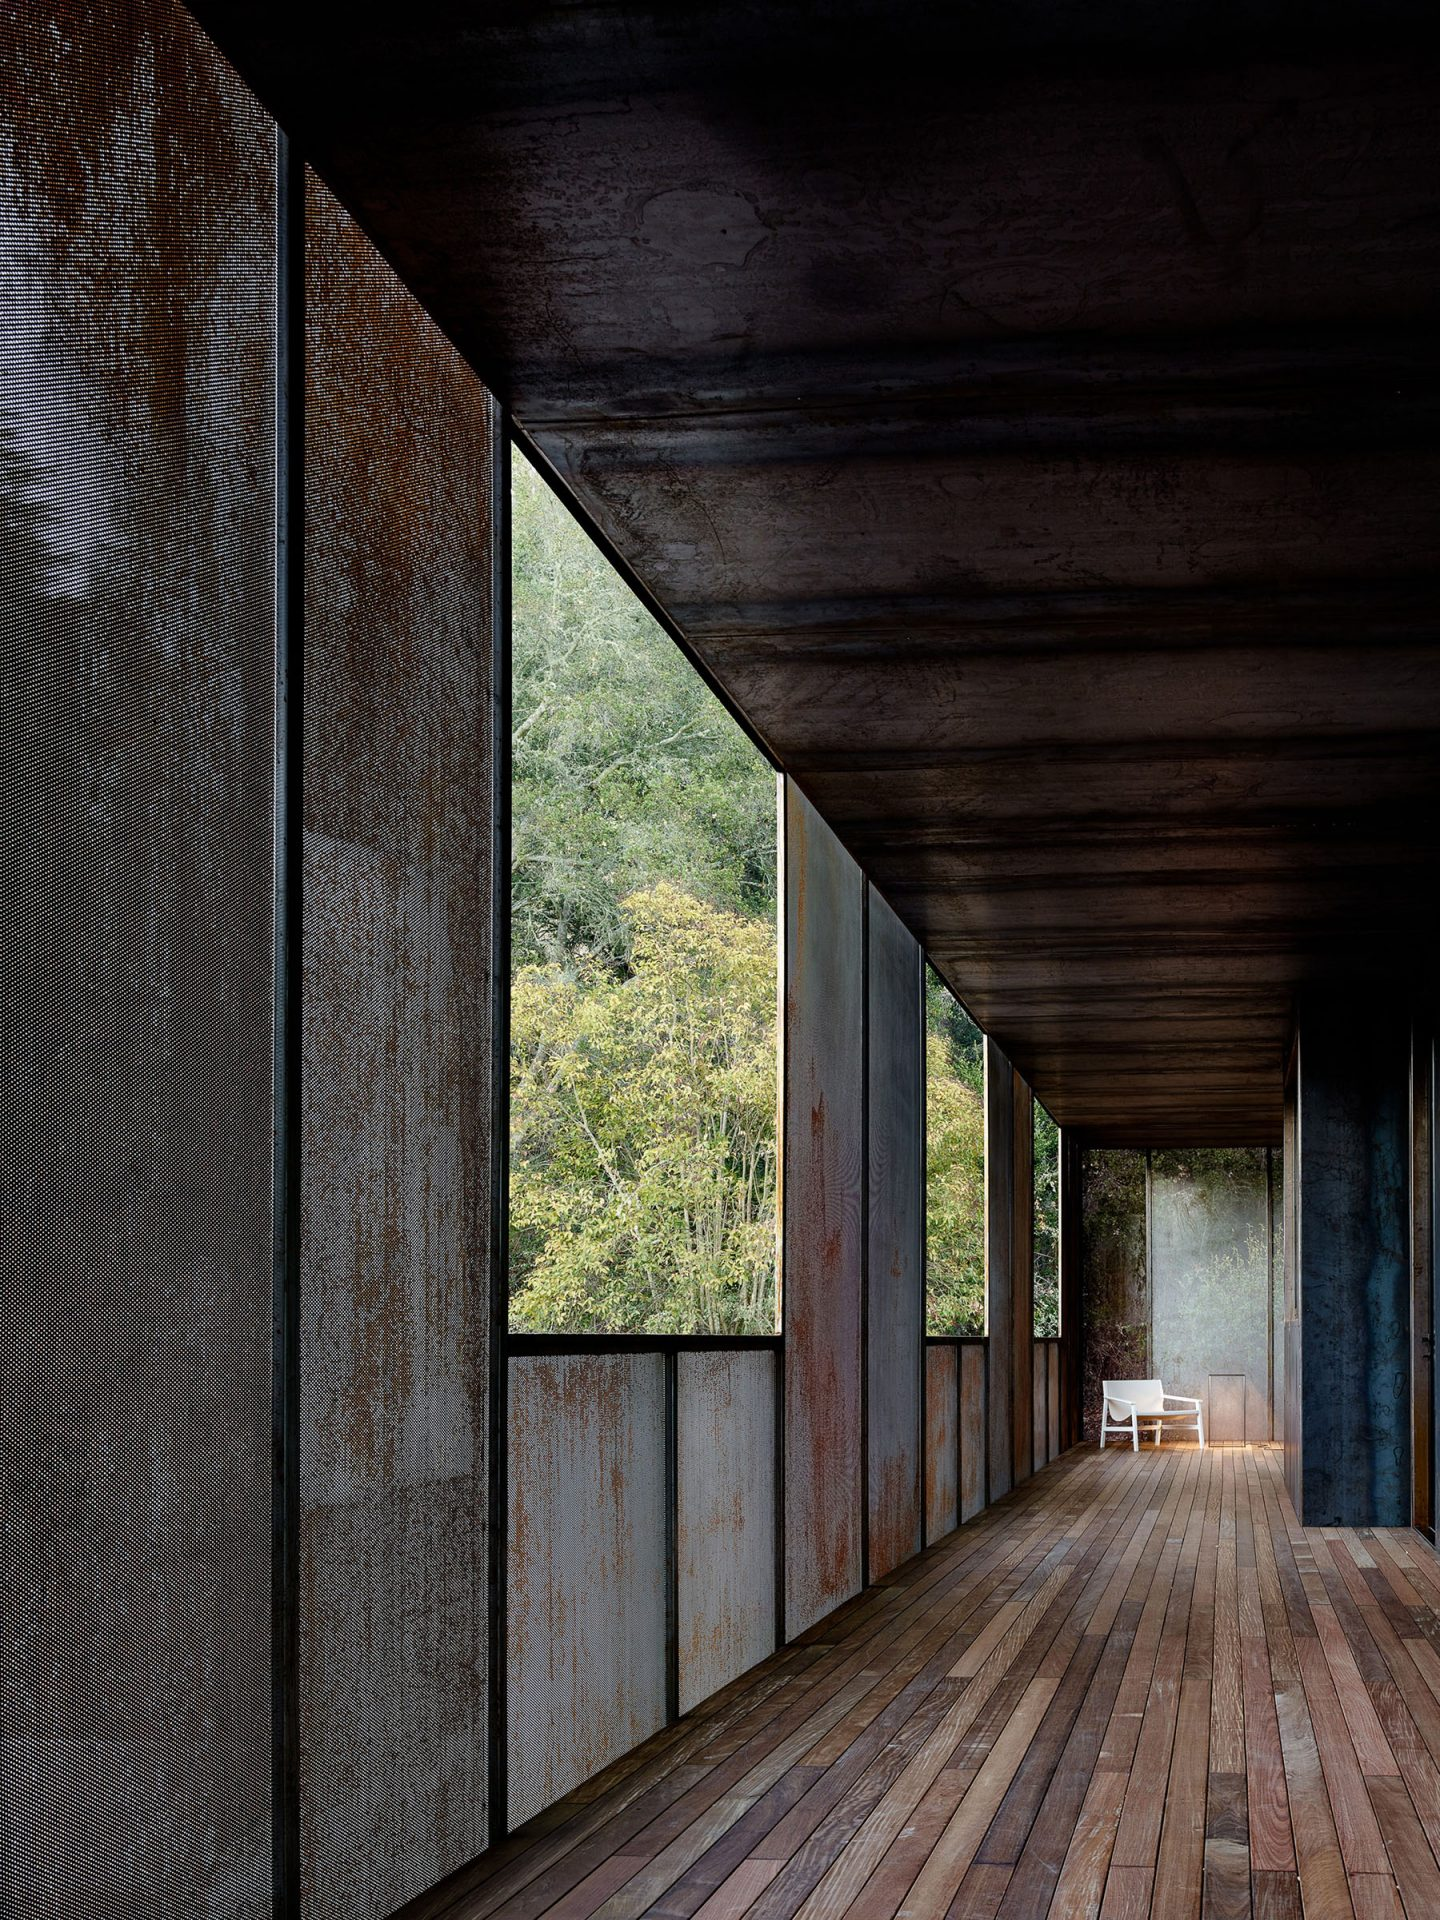 iGNANT-Architecture-Faulker-Architects-Weathering-Steel-Home-010